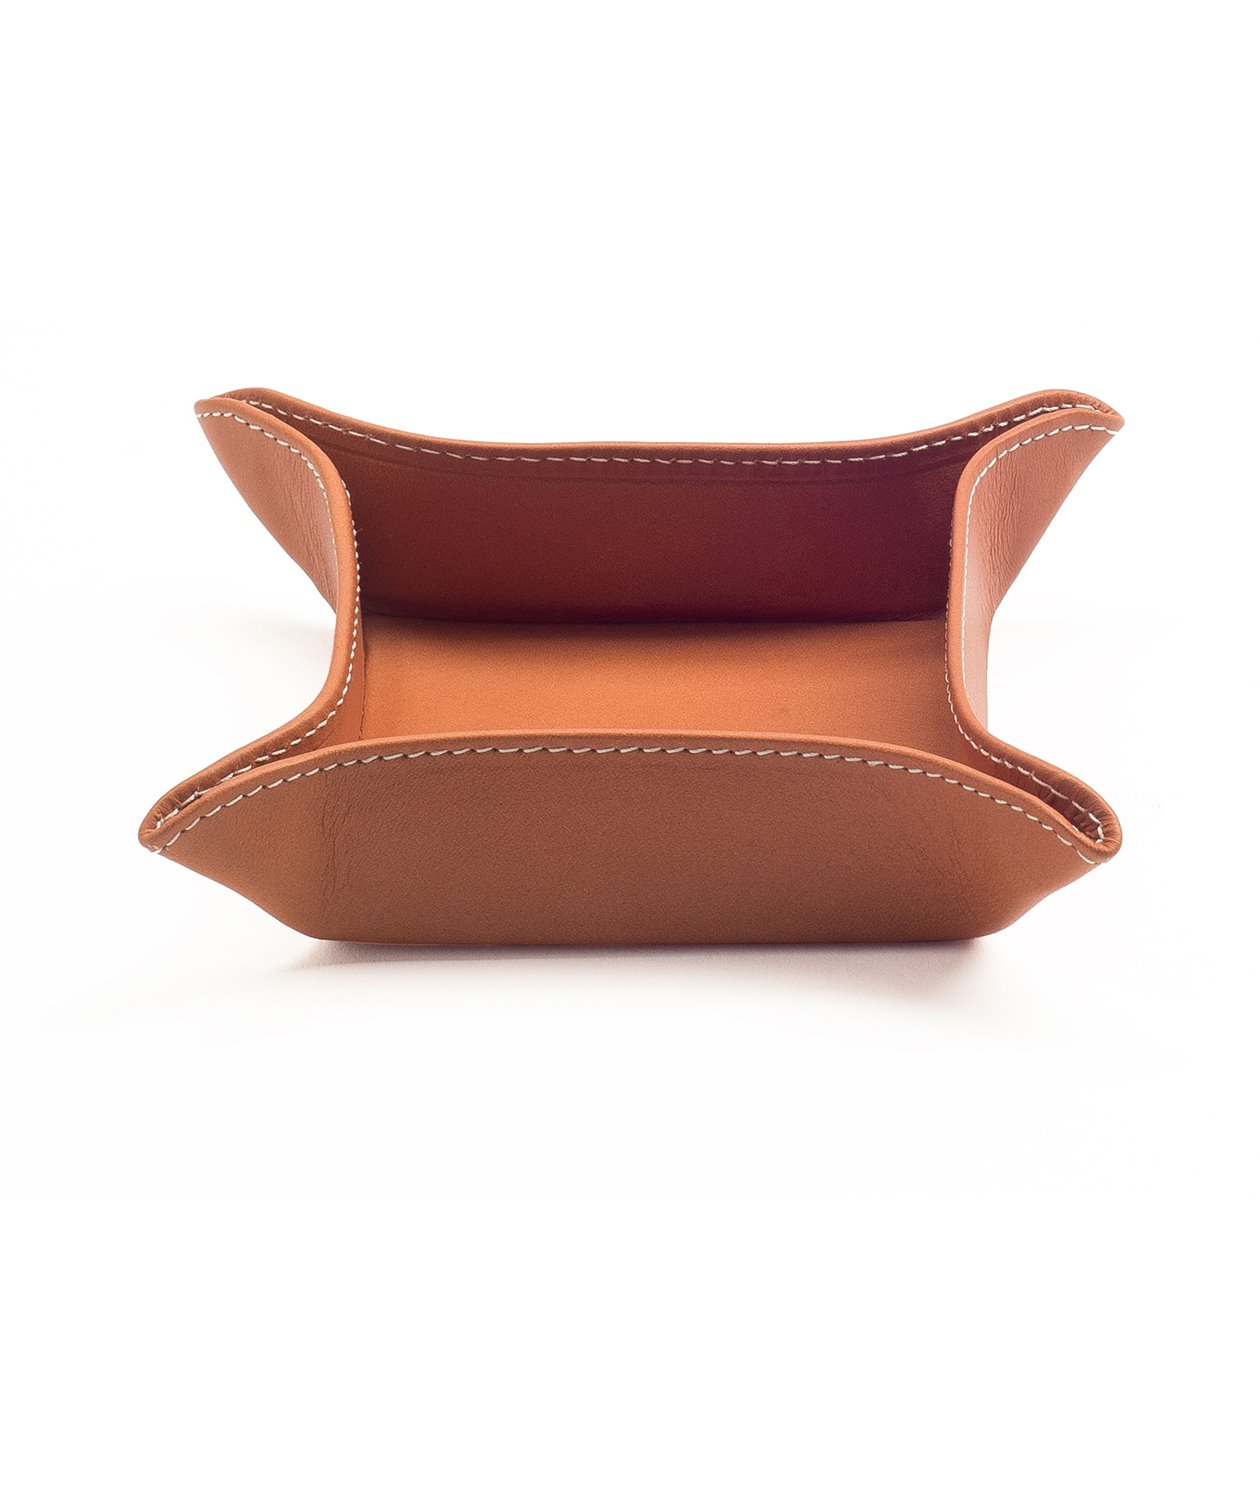 Palmgrens - Fat S Natur - Genuine handcrafted leather since 1896 54d56ee902104